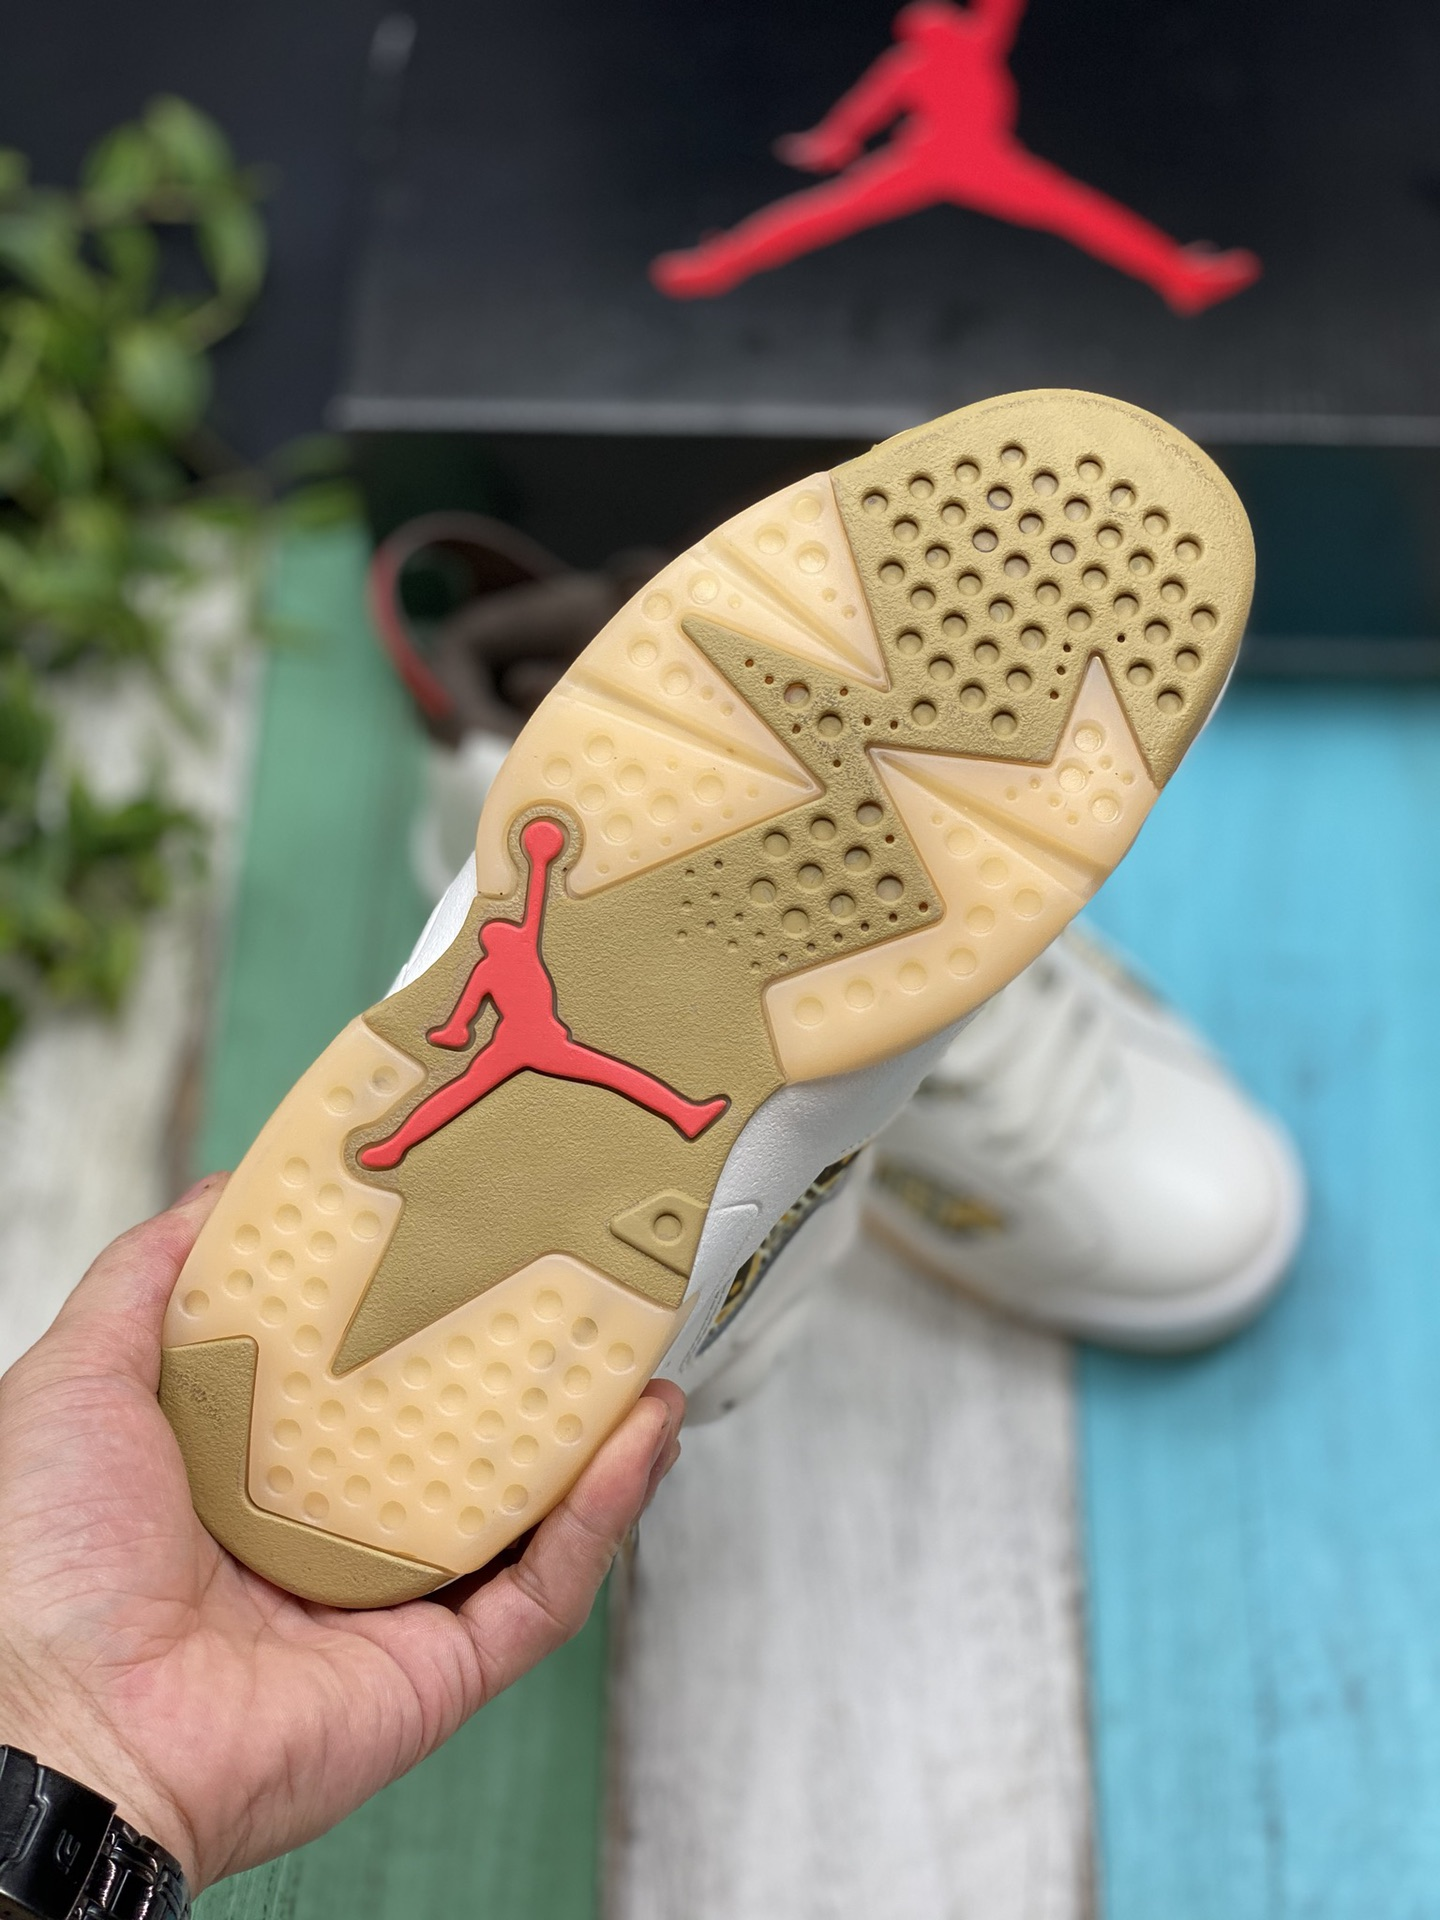 2020 Cheap Air Jordan 6 Sneakers For Men in 227649, cheap Jordan6, only $65!